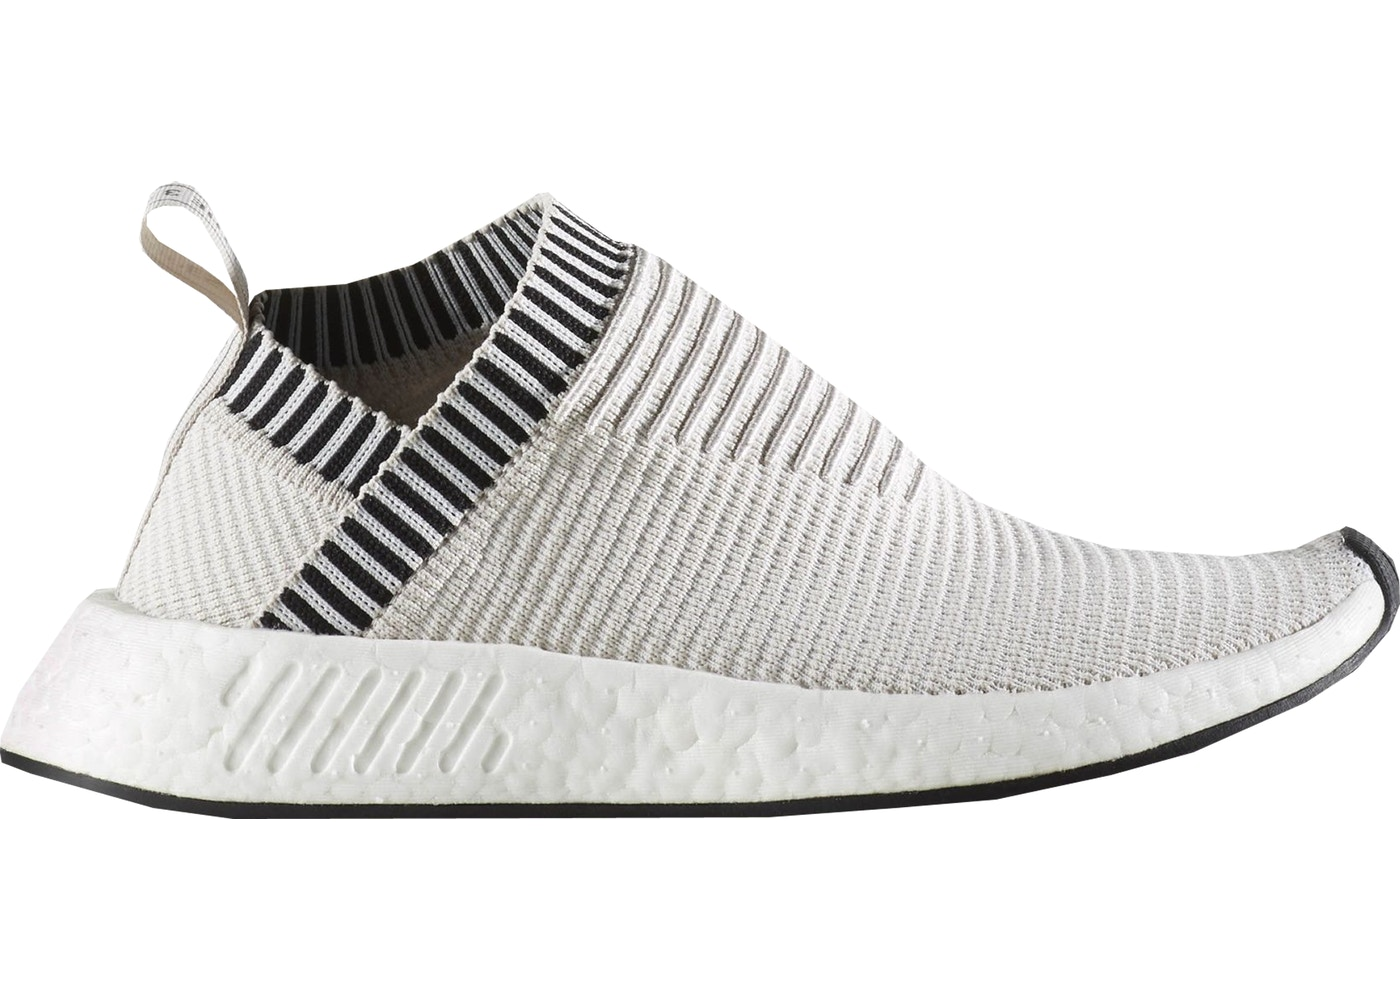 9804826c40cba Buy adidas NMD CS2 Shoes   Deadstock Sneakers